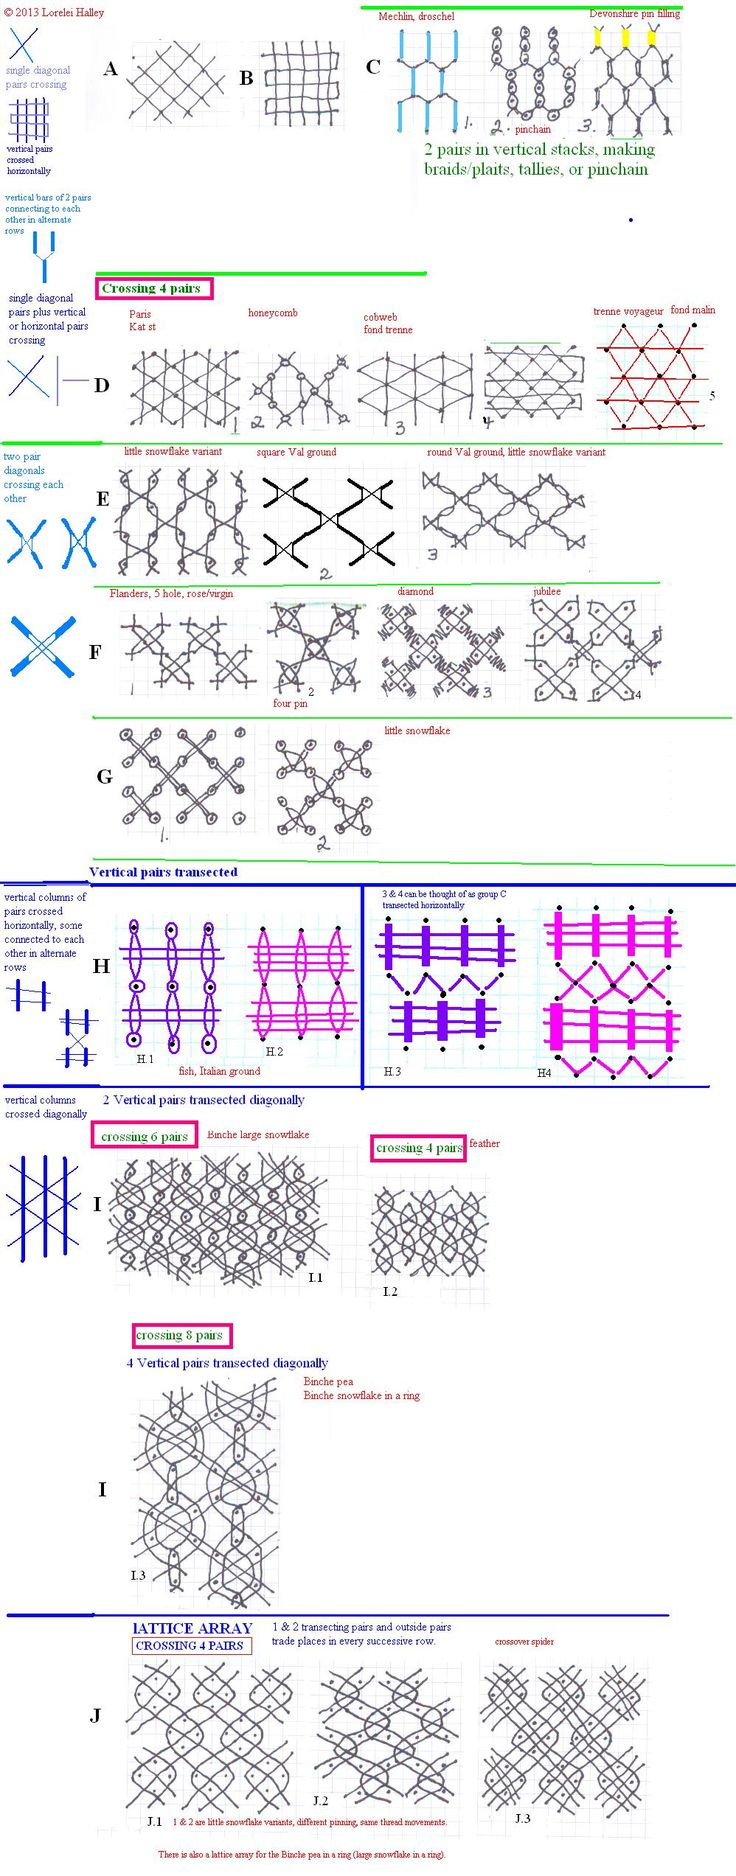 bobbin lace grounds analysis, by Lorelei Halley= lynxlacelady